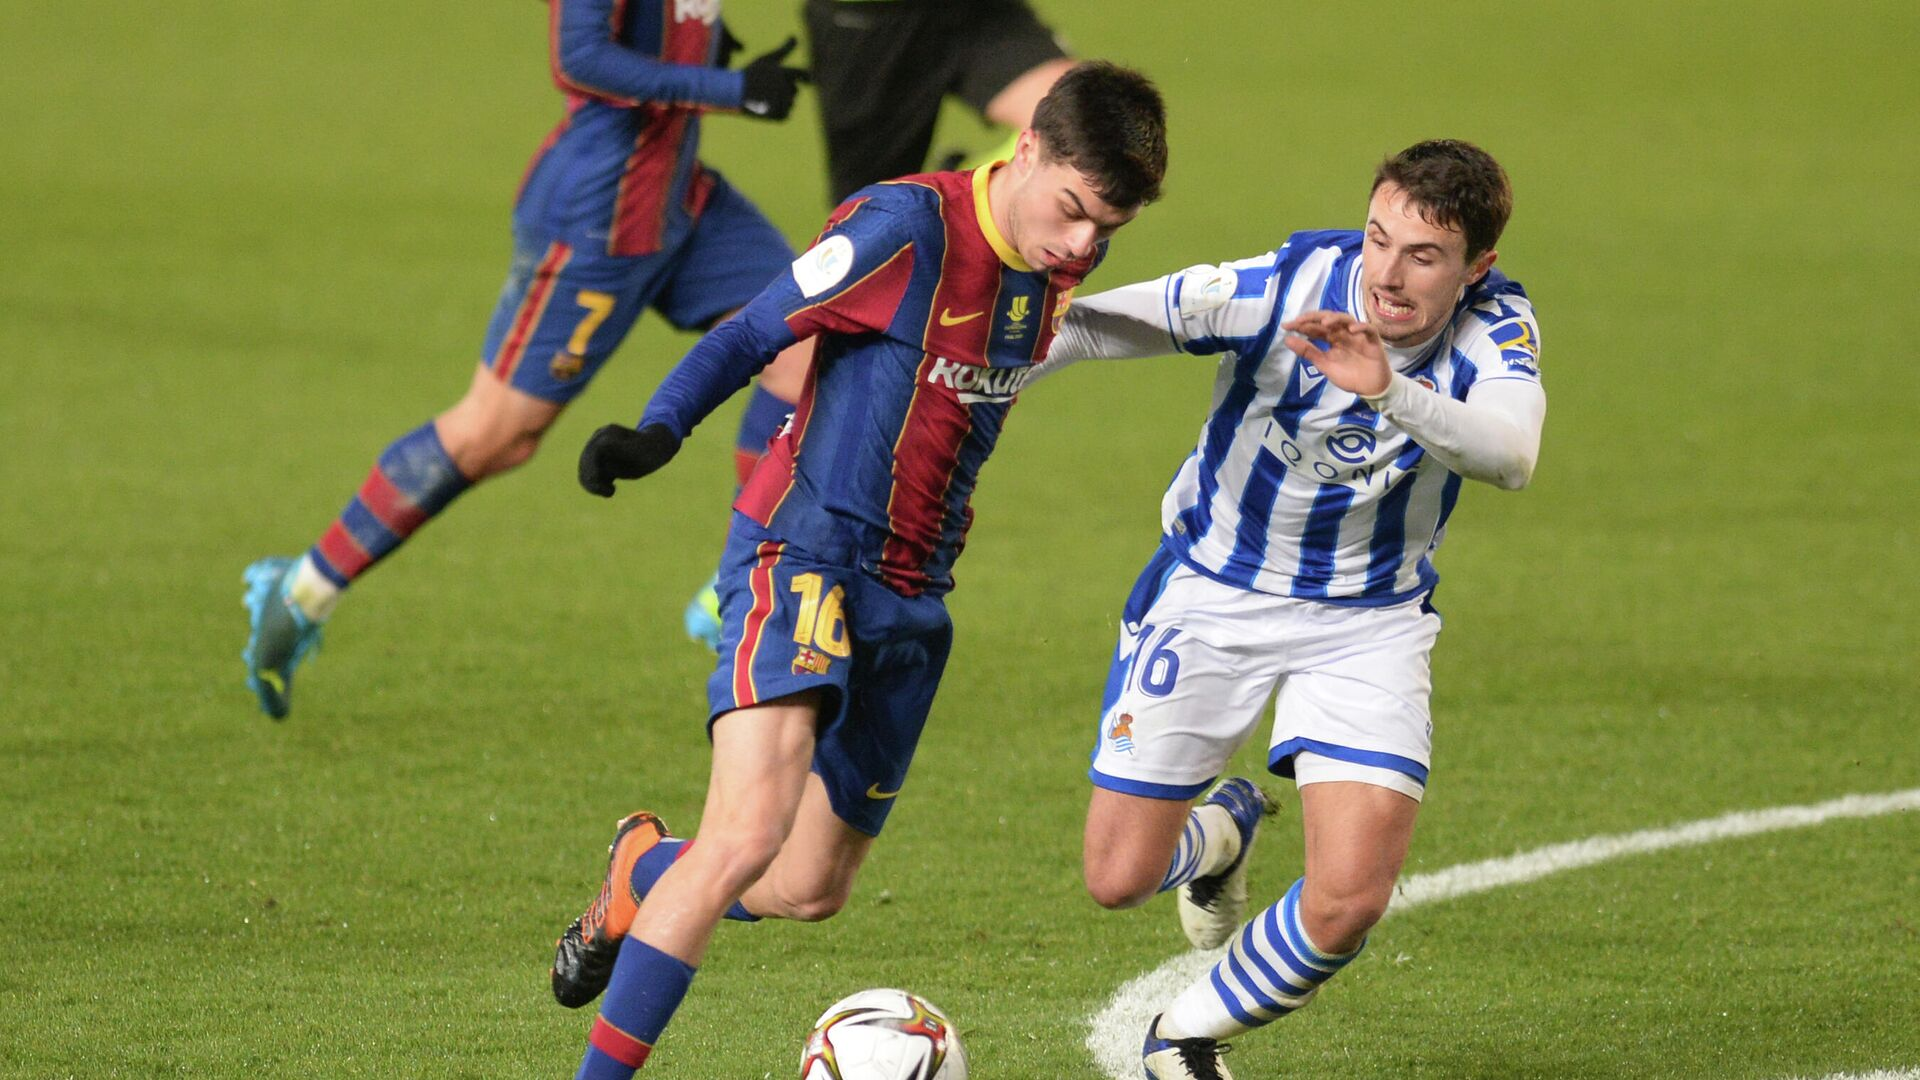 Real Sociedad's Spanish midfielder Ander Guevara (R) vies with Barcelona's Spanish midfielder Pedri during the Spanish Super Cup semi final football match between Real Sociedad and FC Barcelona at the Nuevo Arcangel stadium in Cordoba on January 13, 2021. (Photo by CRISTINA QUICLER / AFP) - РИА Новости, 1920, 14.01.2021